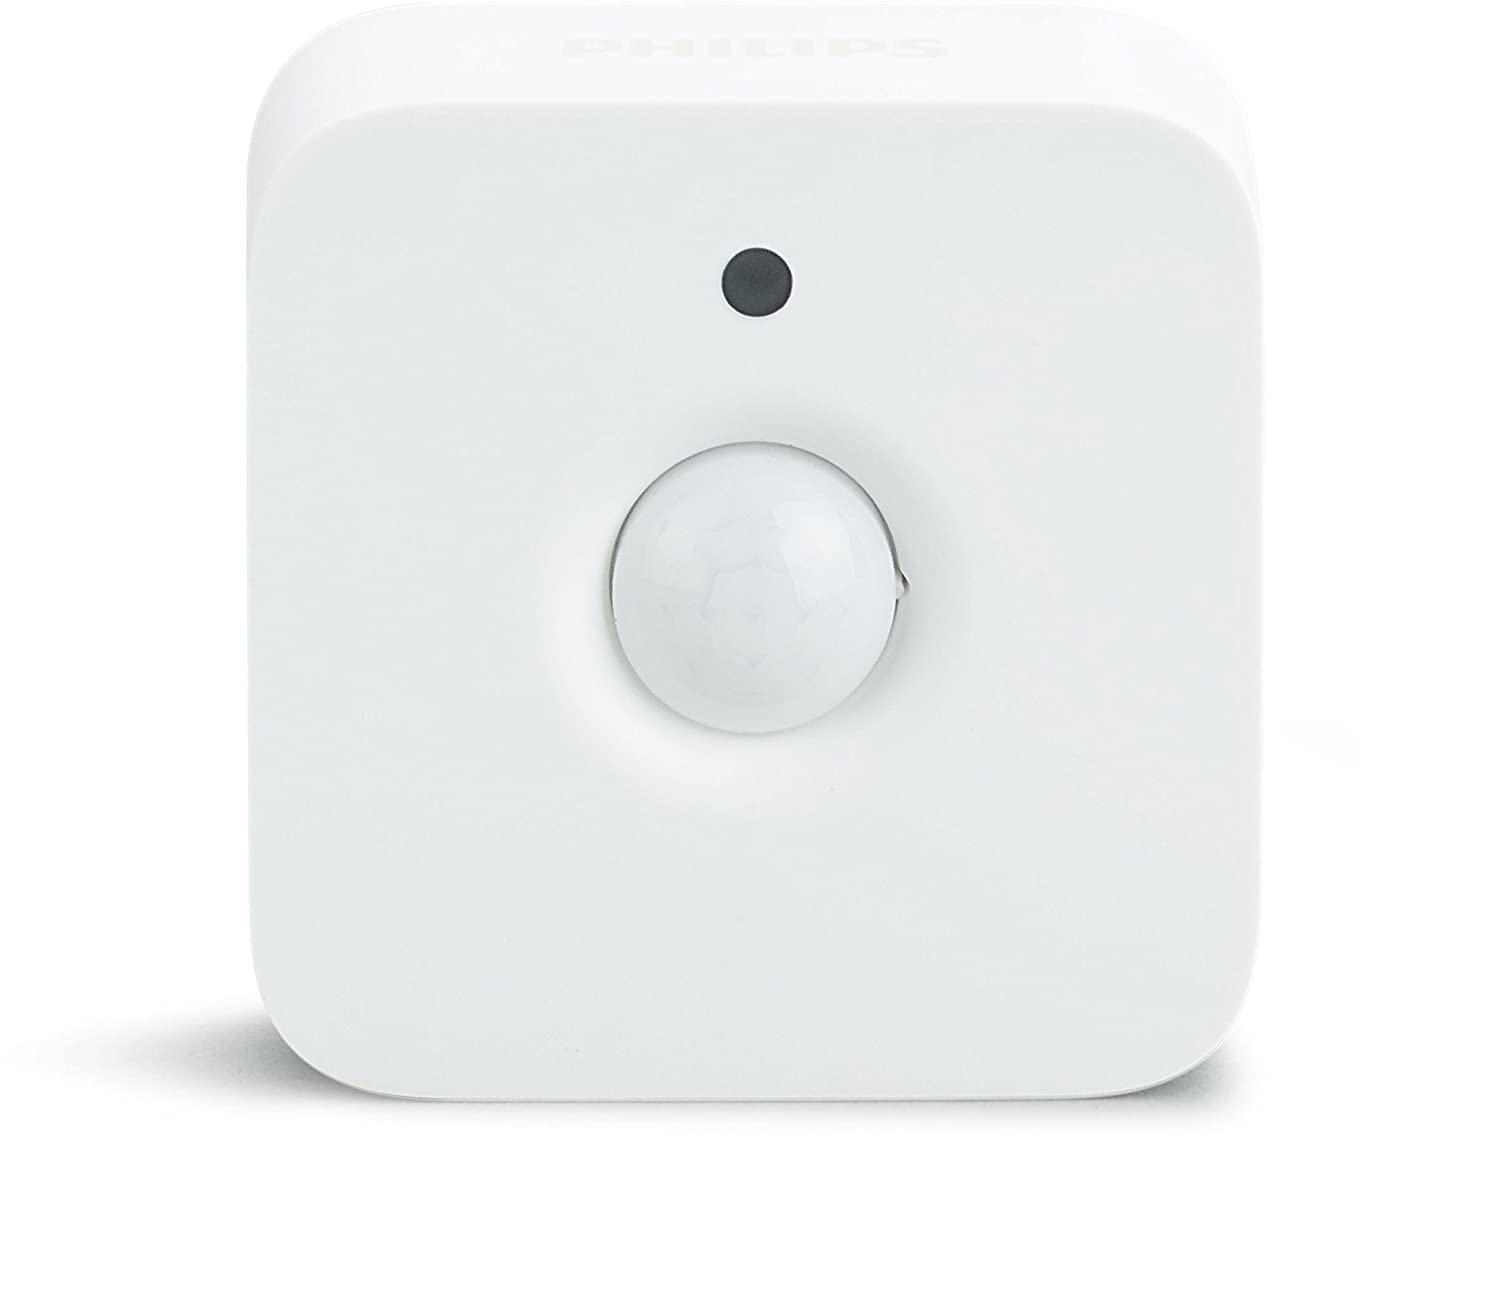 Philips Hue Sensor de movimiento controlable vía WiFi compatible con Apple Homekit